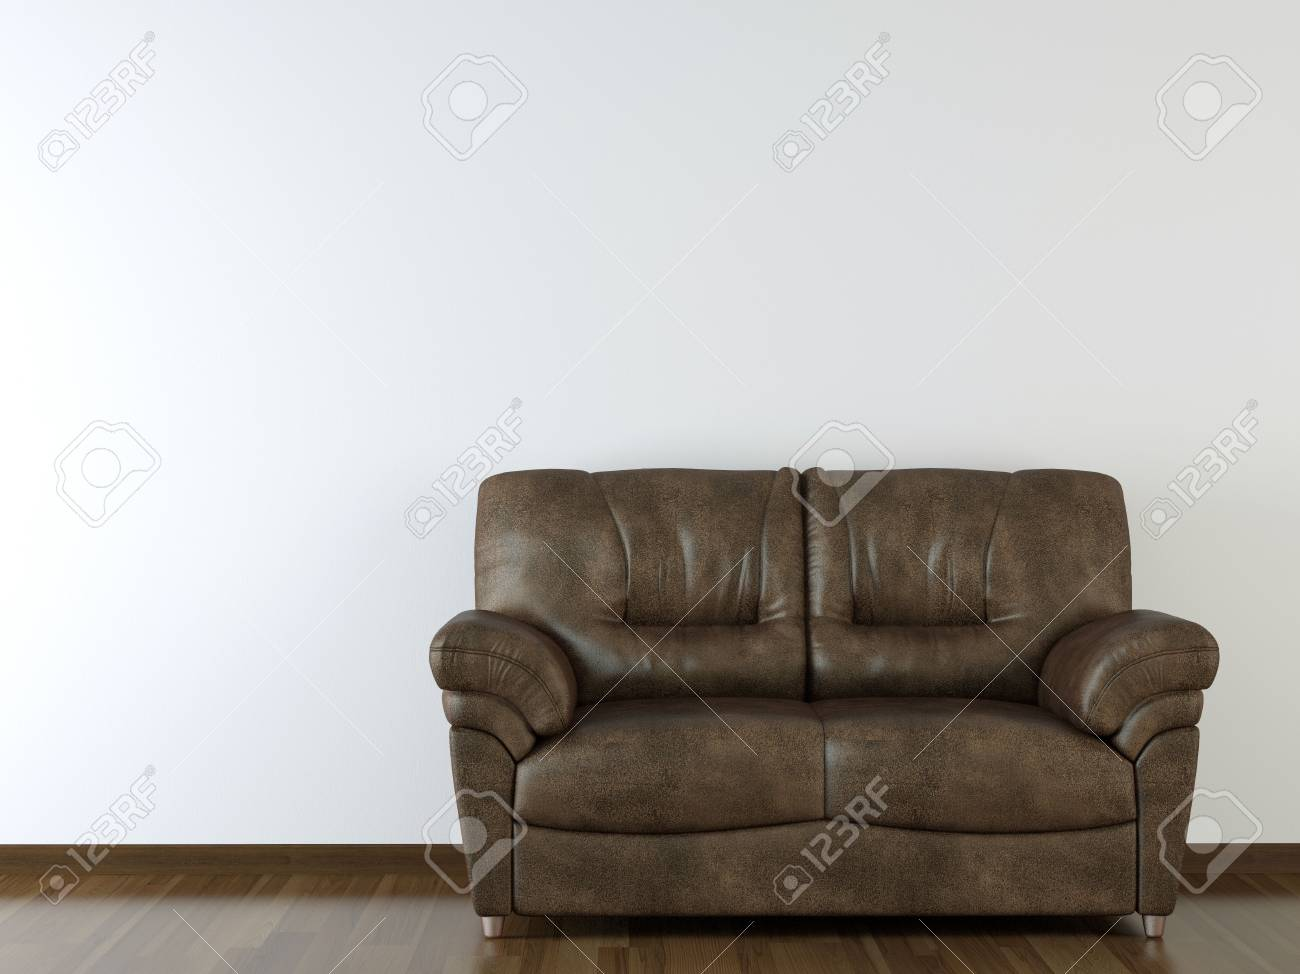 interior design brown leather couch on white wall with copy space Stock Photo - 4787392